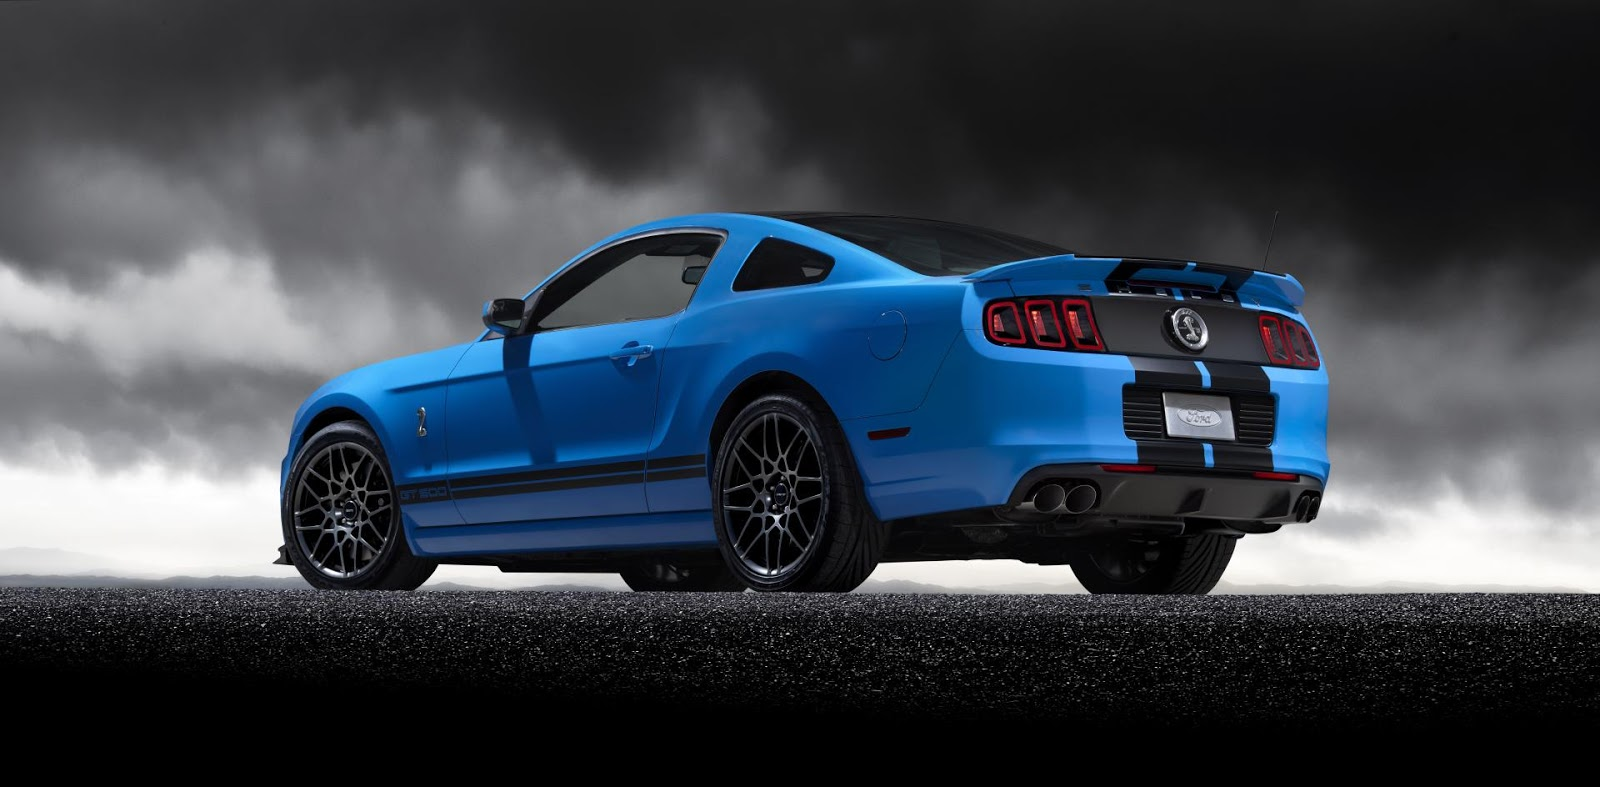 Ford Shelby Mustang GT500 2013 Hottest Car Wallpapers Bestgarage 1600x787